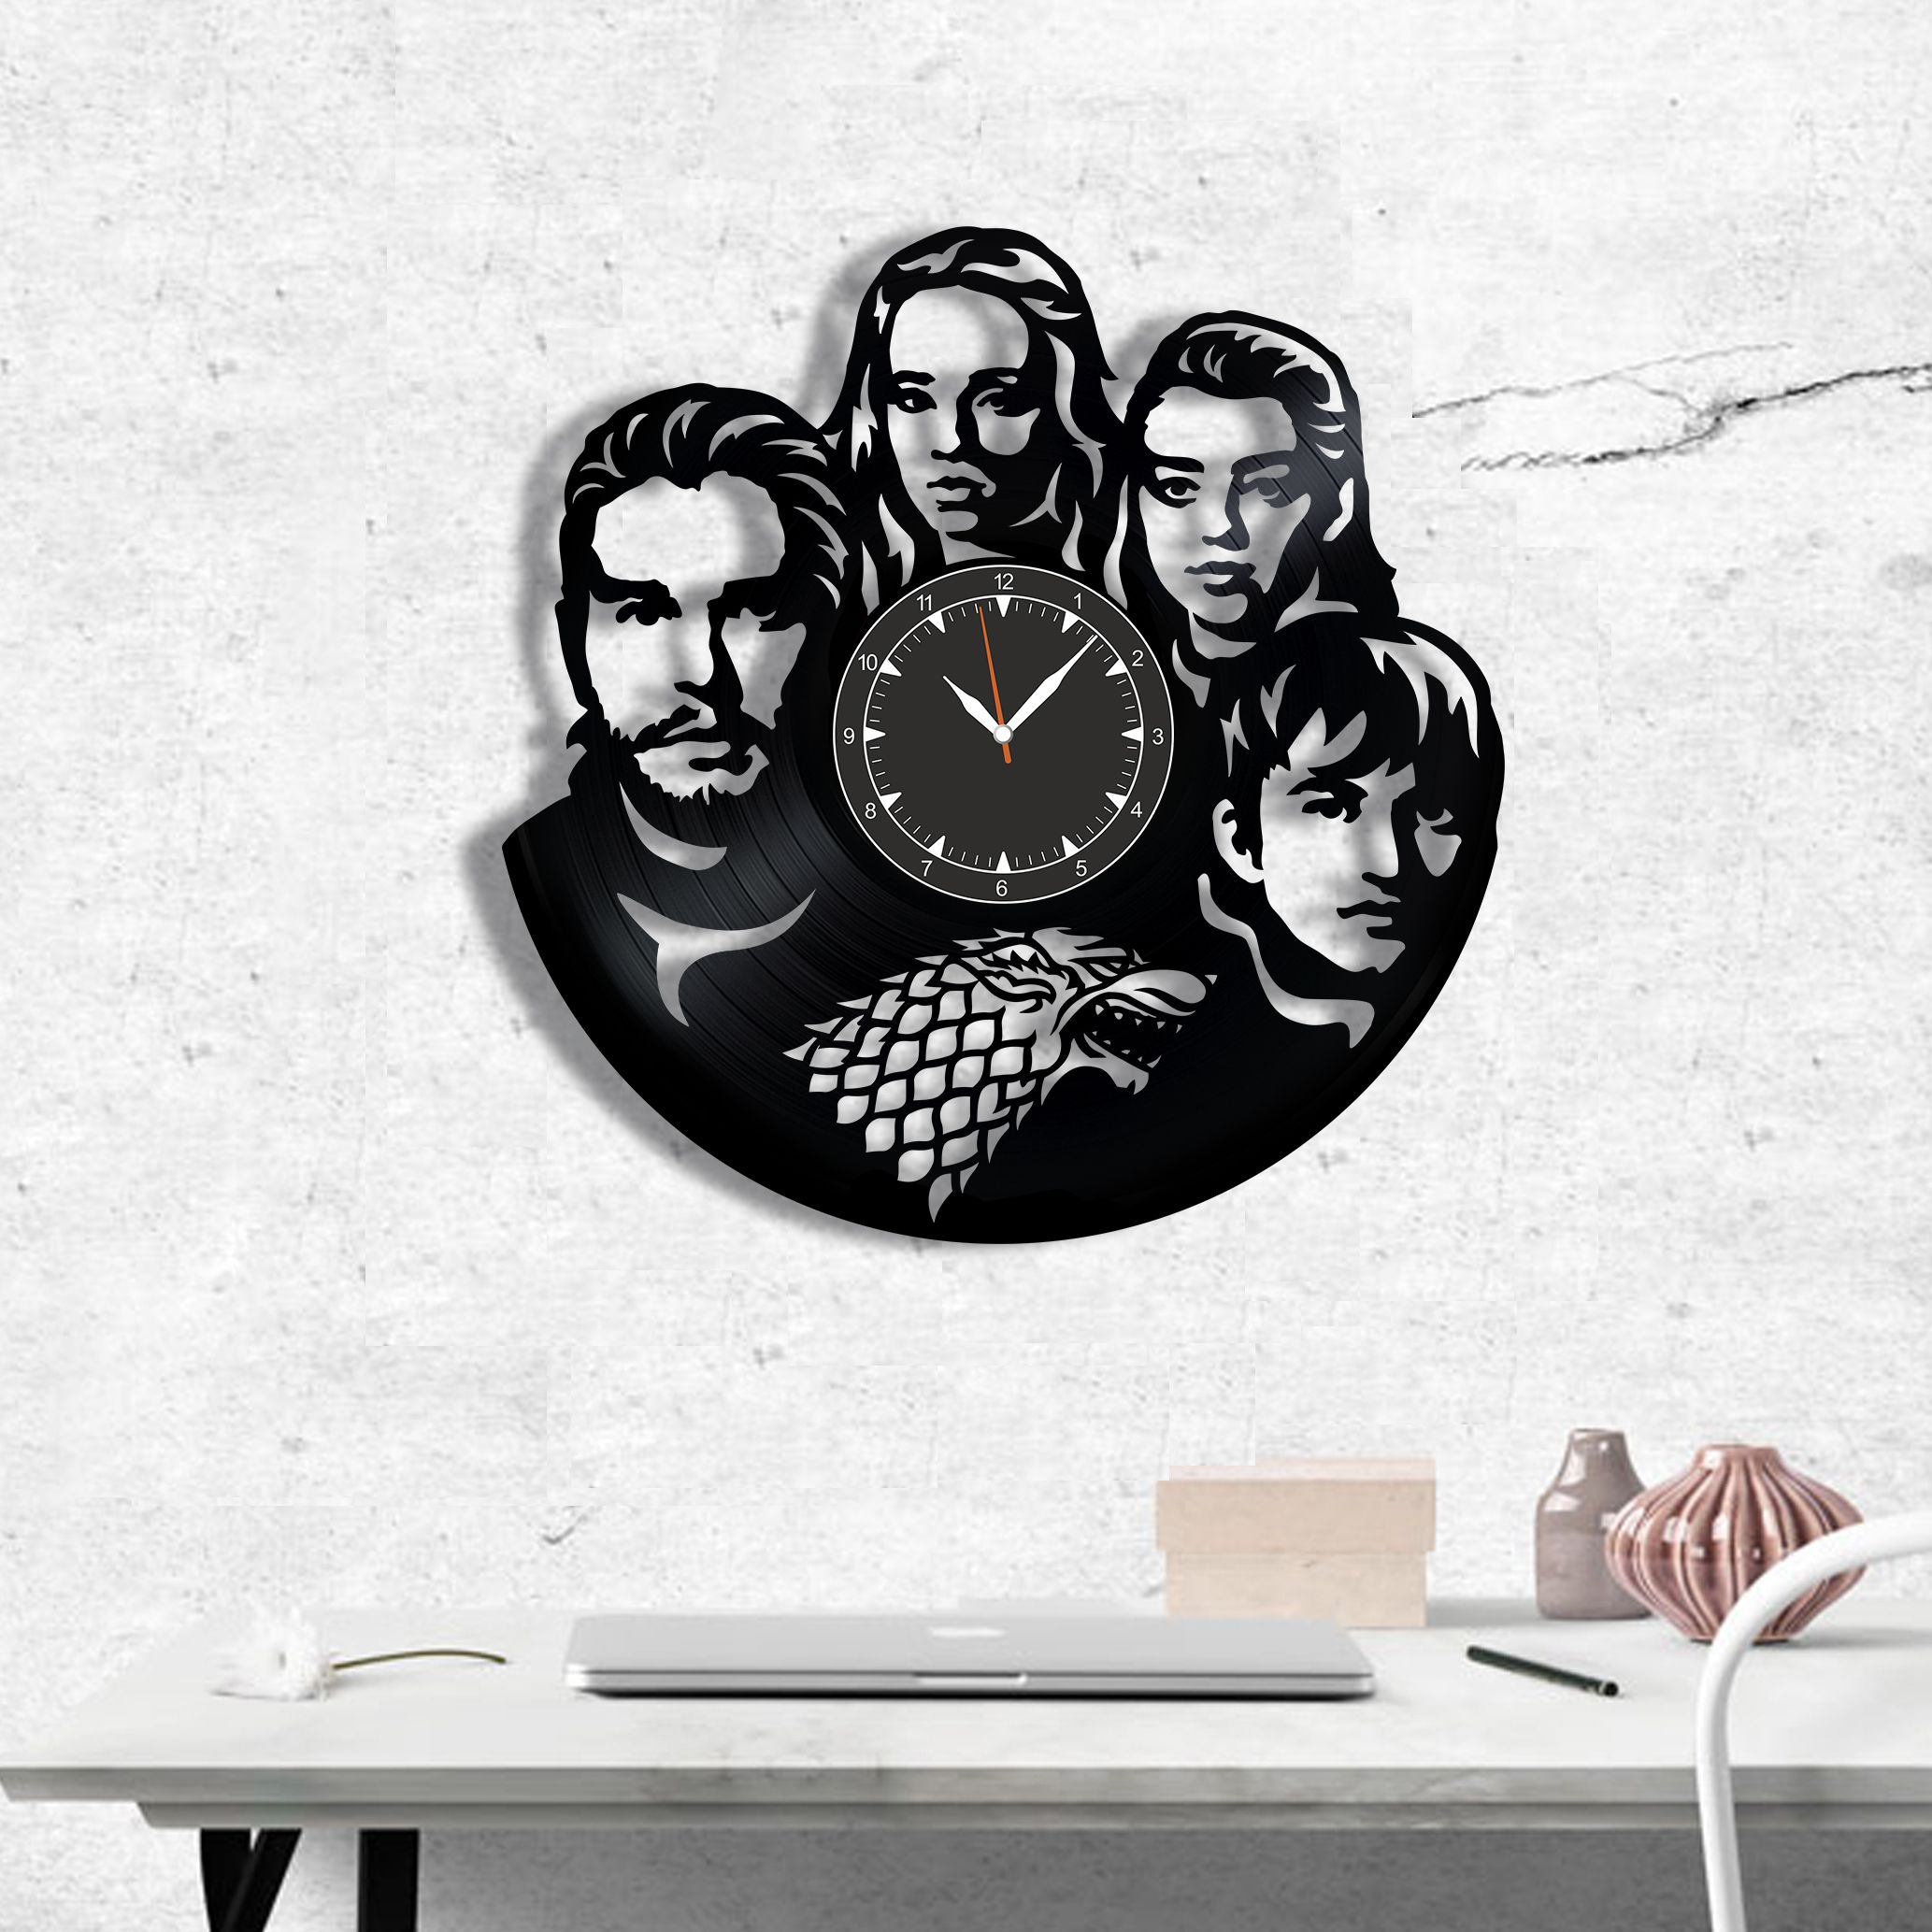 Game of Thrones vinyl record clock, wall clock Game of